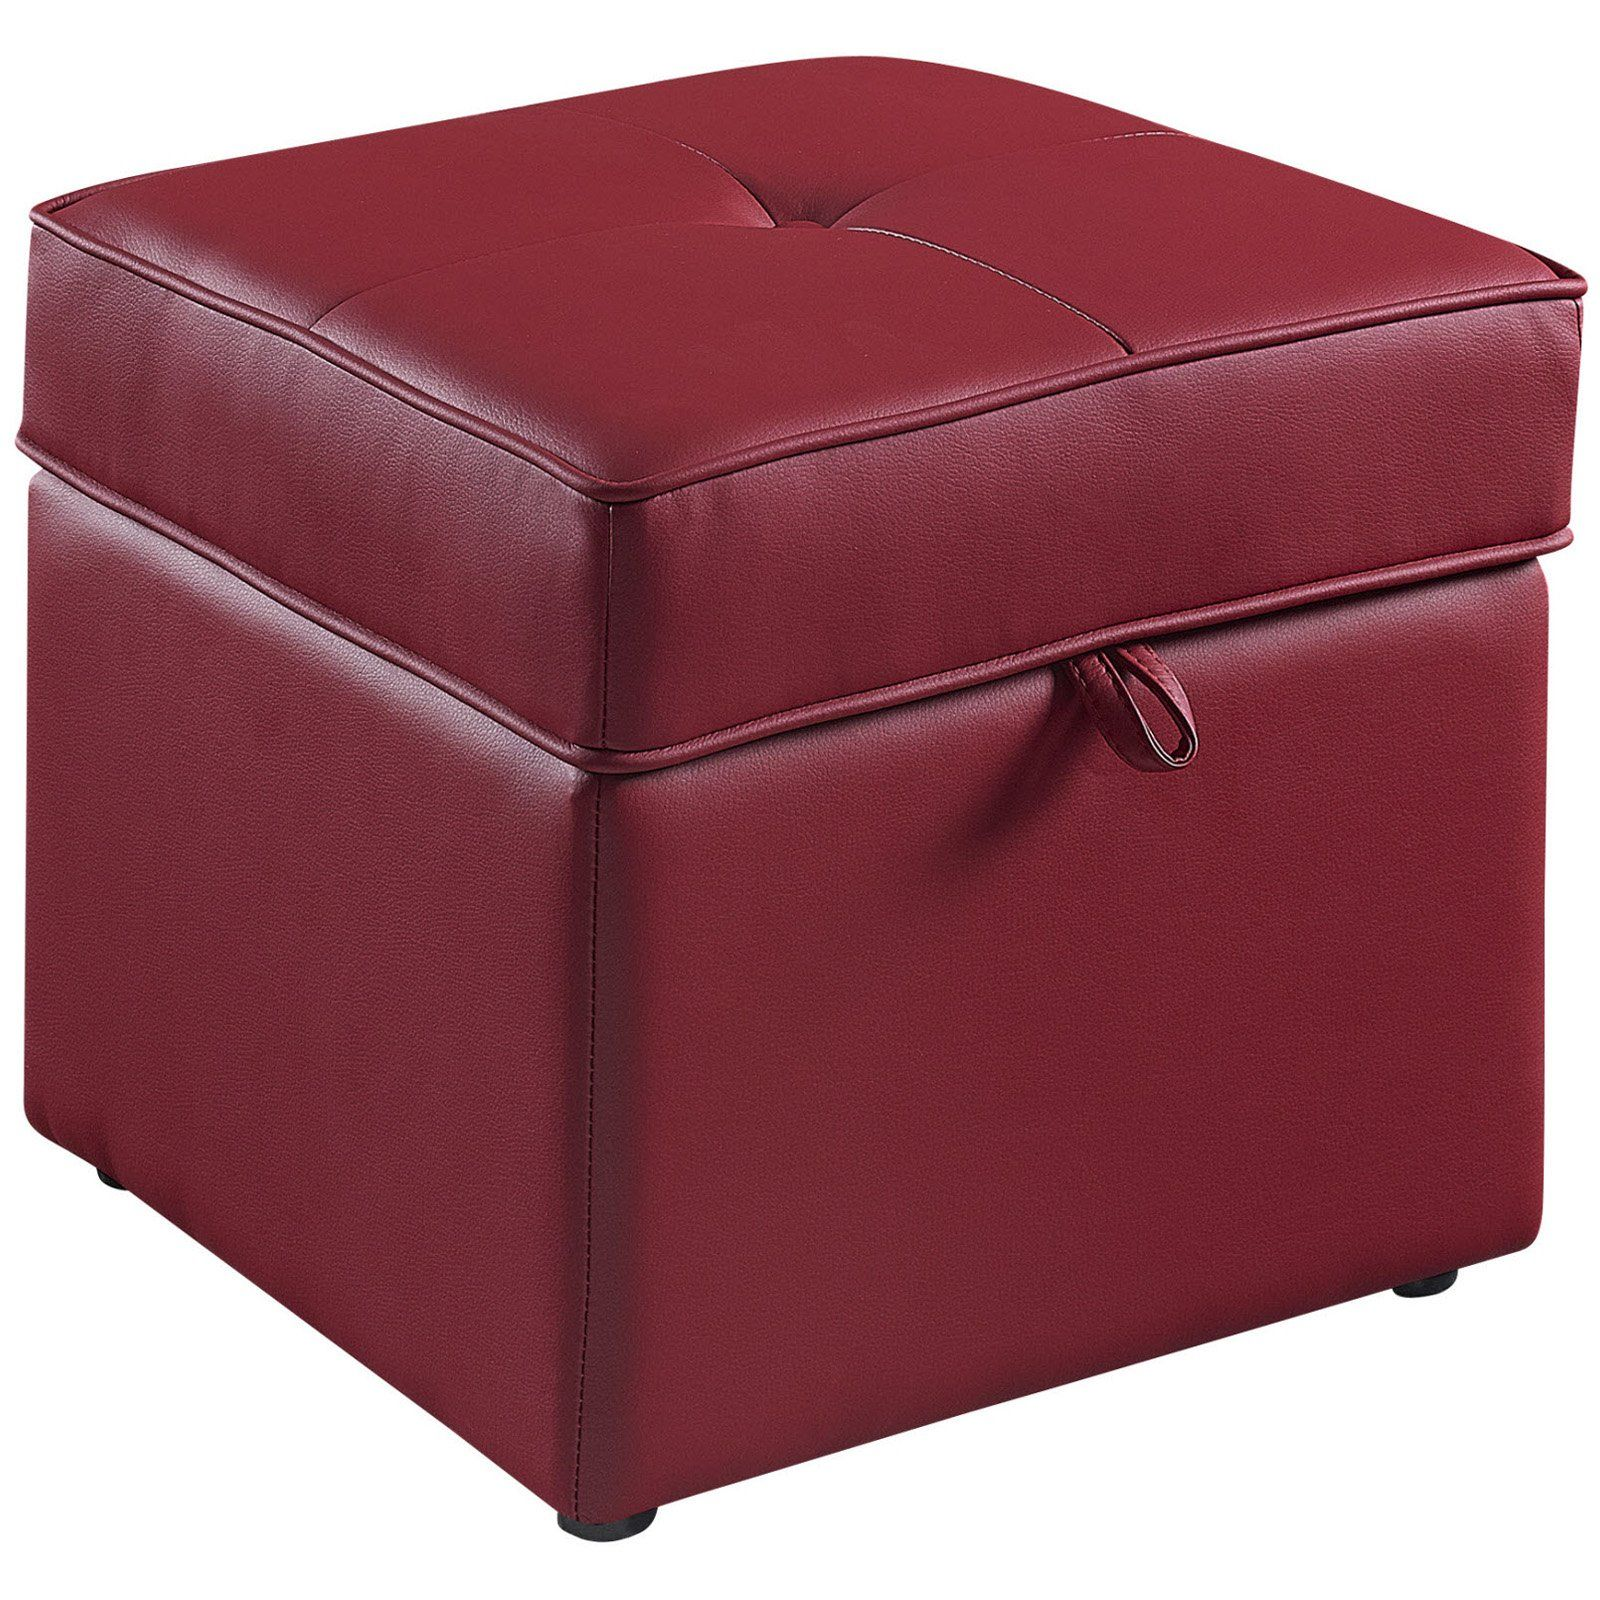 Charmant Tova Faux Leather Storage Ottoman   Crimson Red $59.98